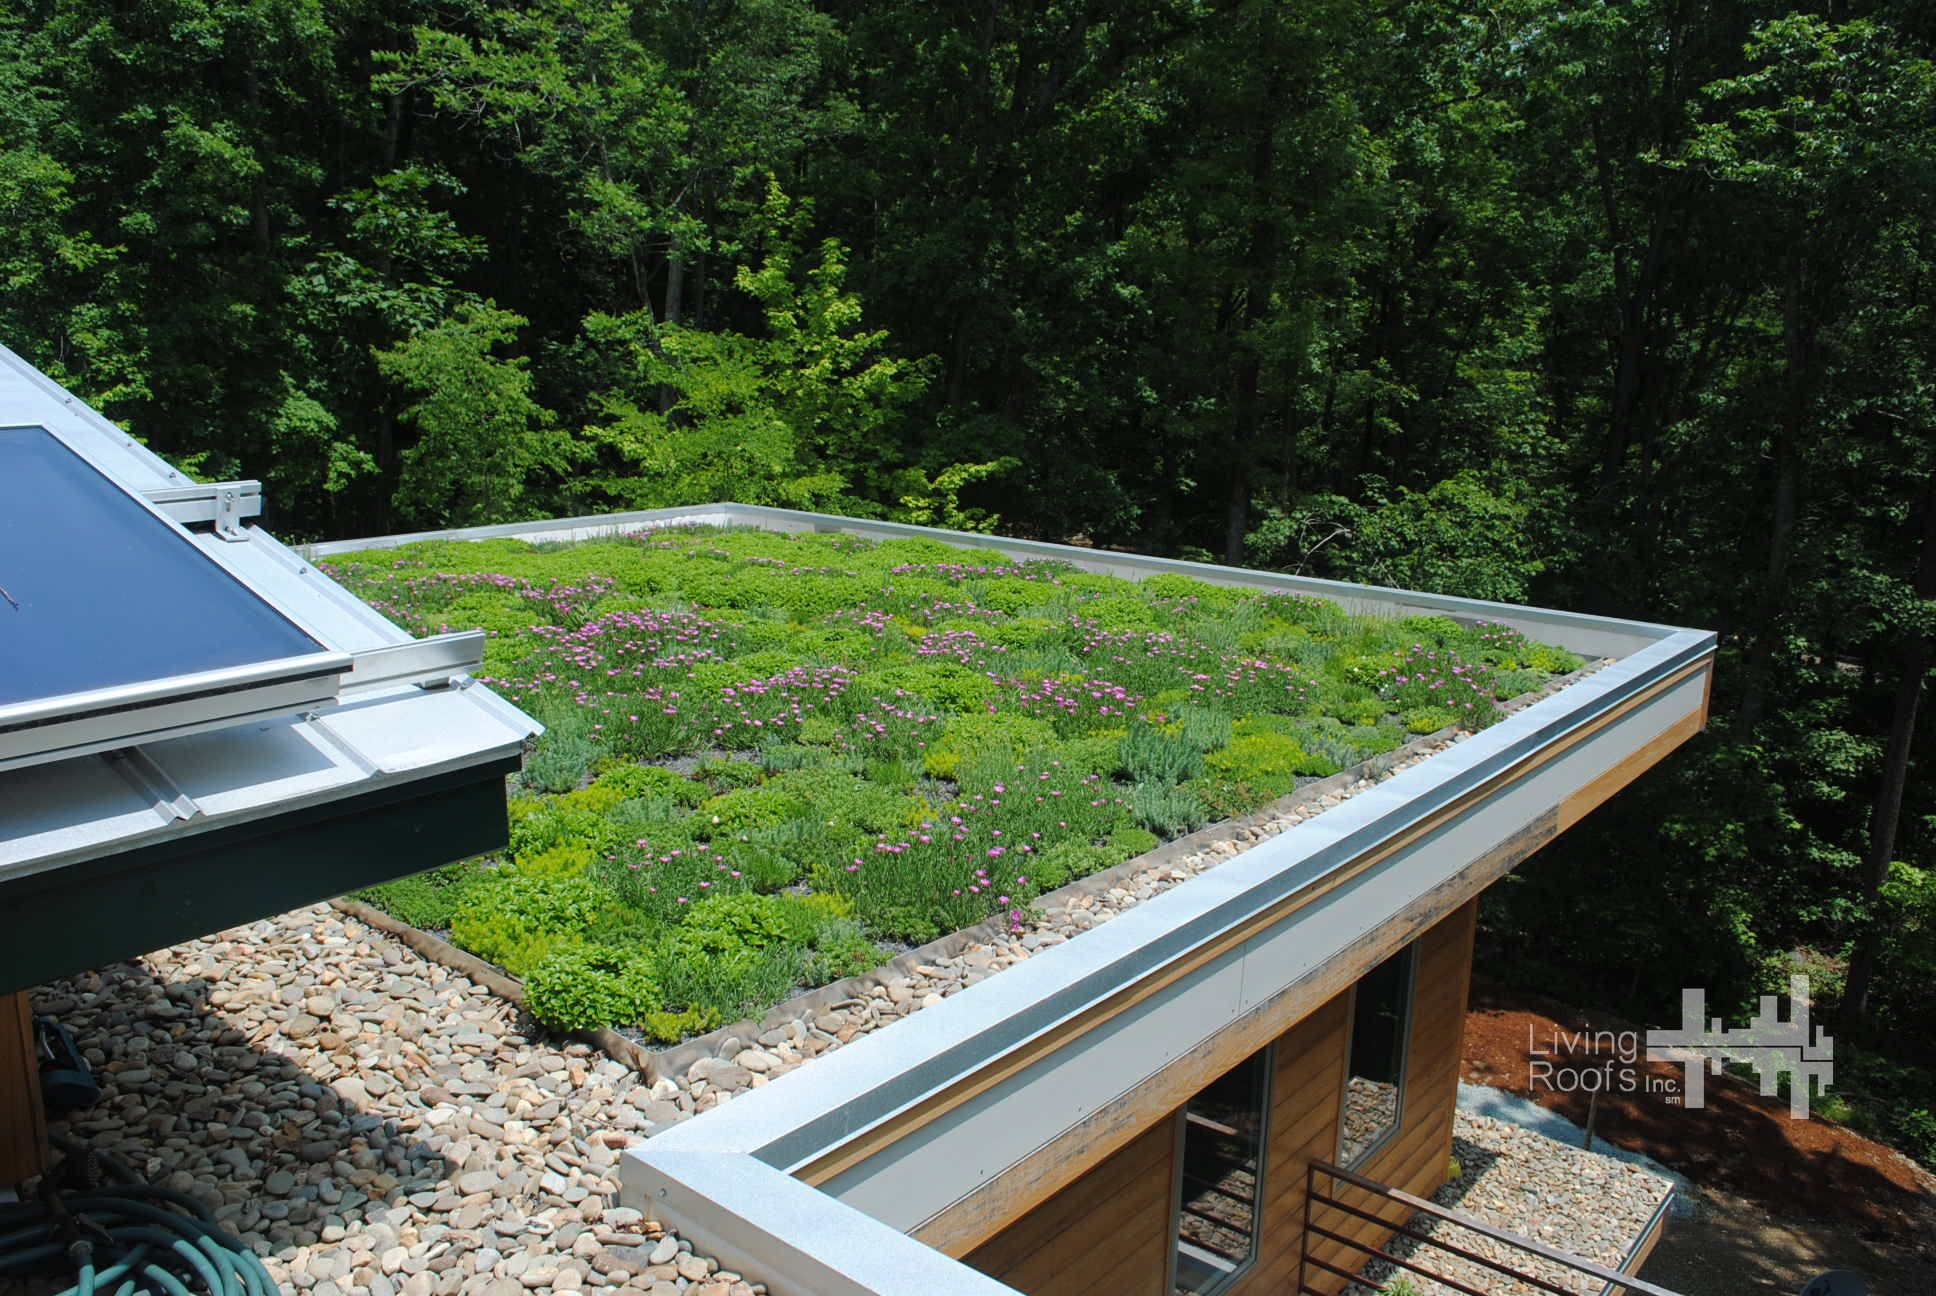 50 Living Roofs Inc Residential Green Roof Projects Ideas In 2020 Green Roof Project Living Roofs Green Roof